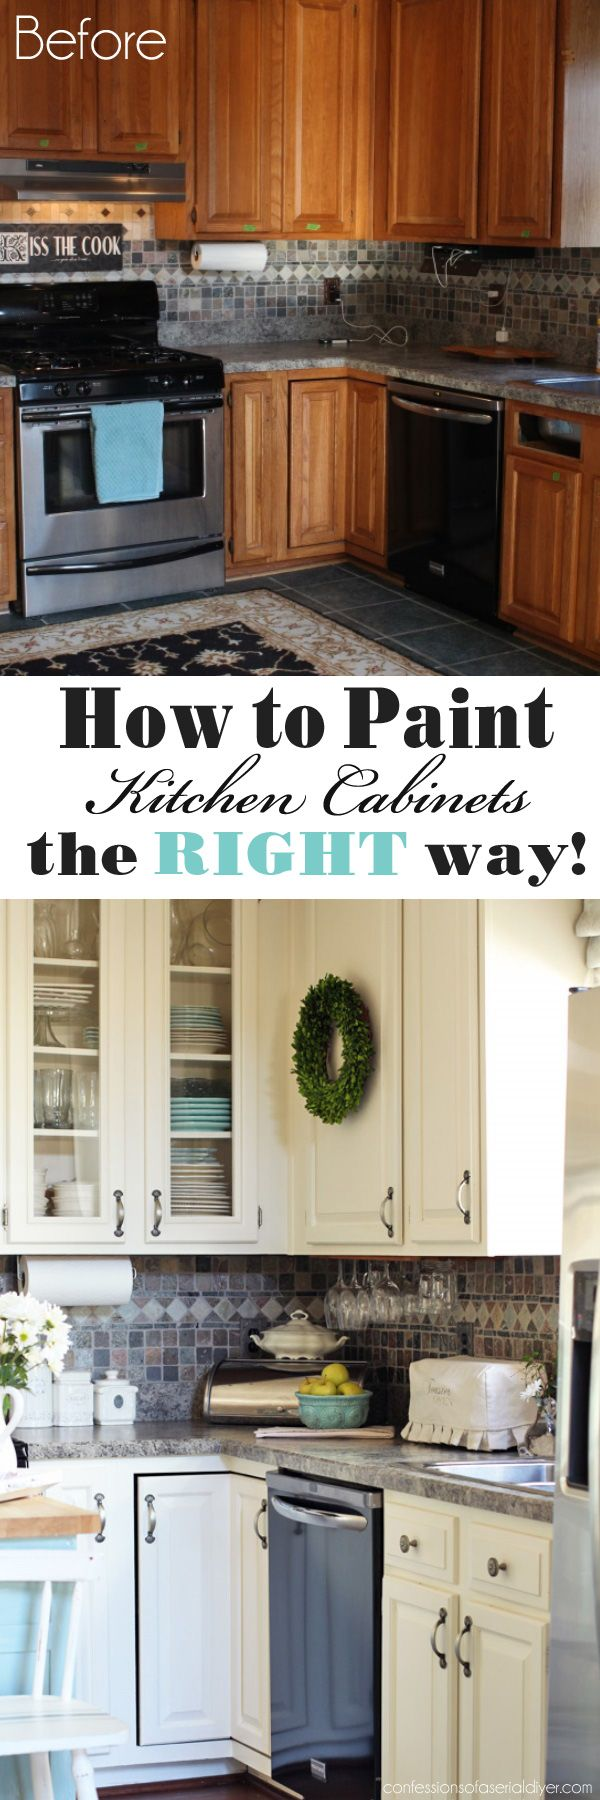 Pinterest Painted Kitchen Cabinets Best 25 Painted Kitchen Cabinets Ideas On Pinterest  Painting .